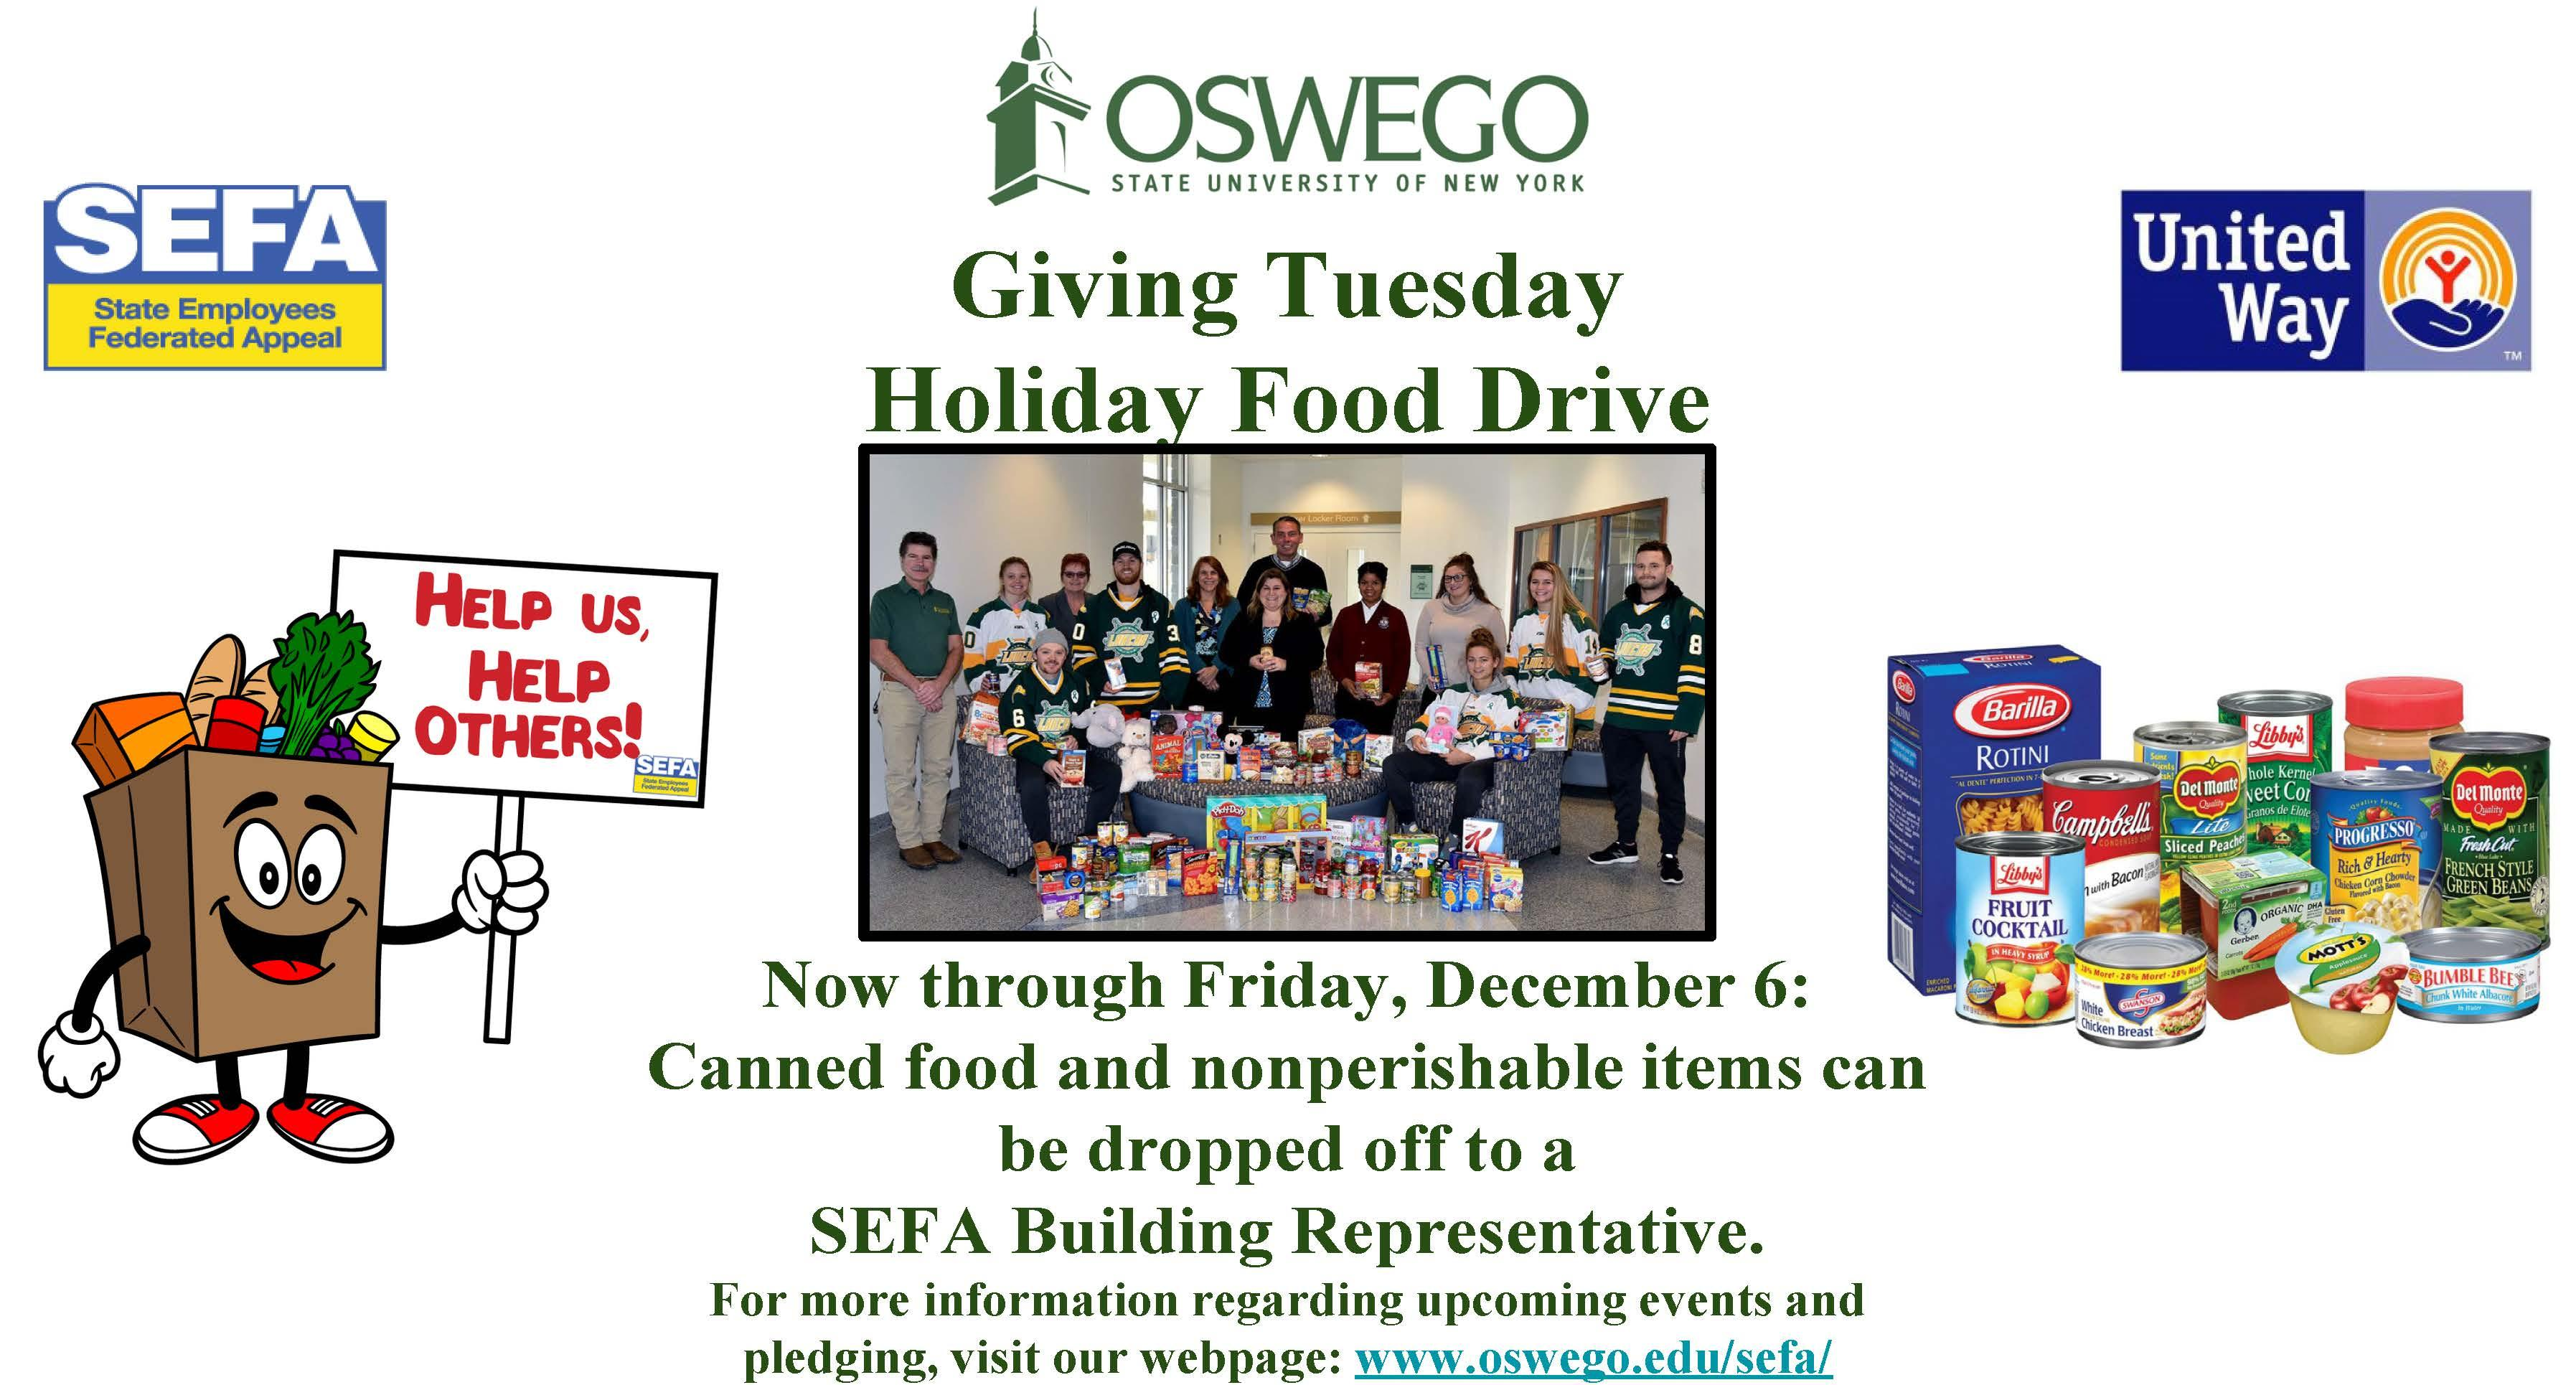 SEFA Giving Tuesday Holiday Food Drive - Now through Dec. 6th